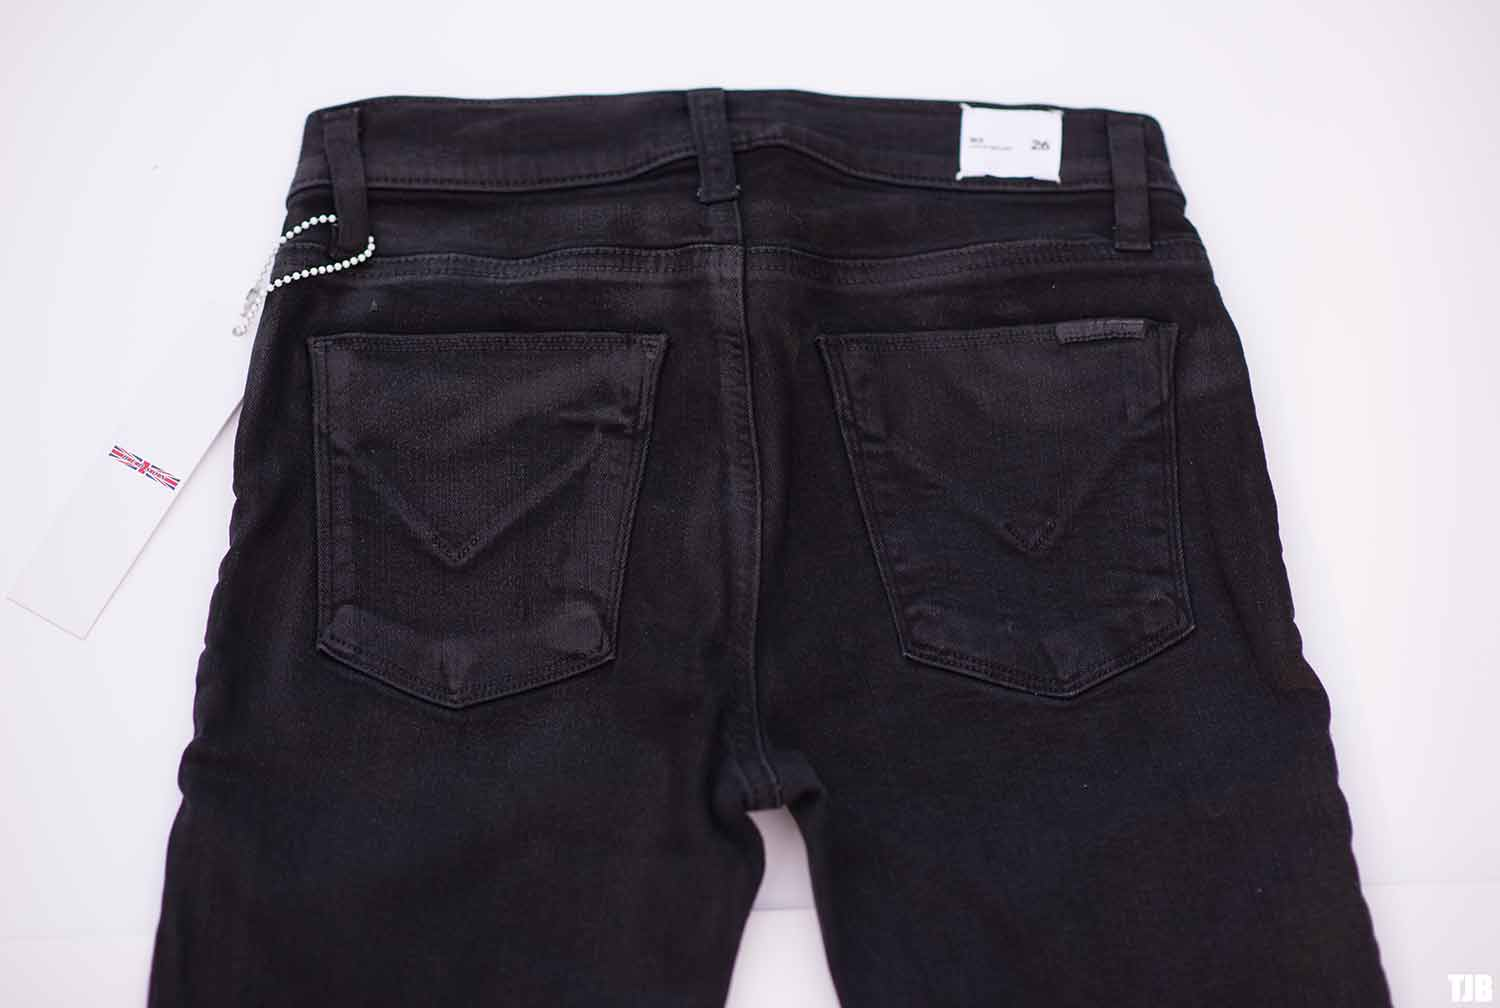 hudson-nix-skinny-lace-up-jeans-review-6